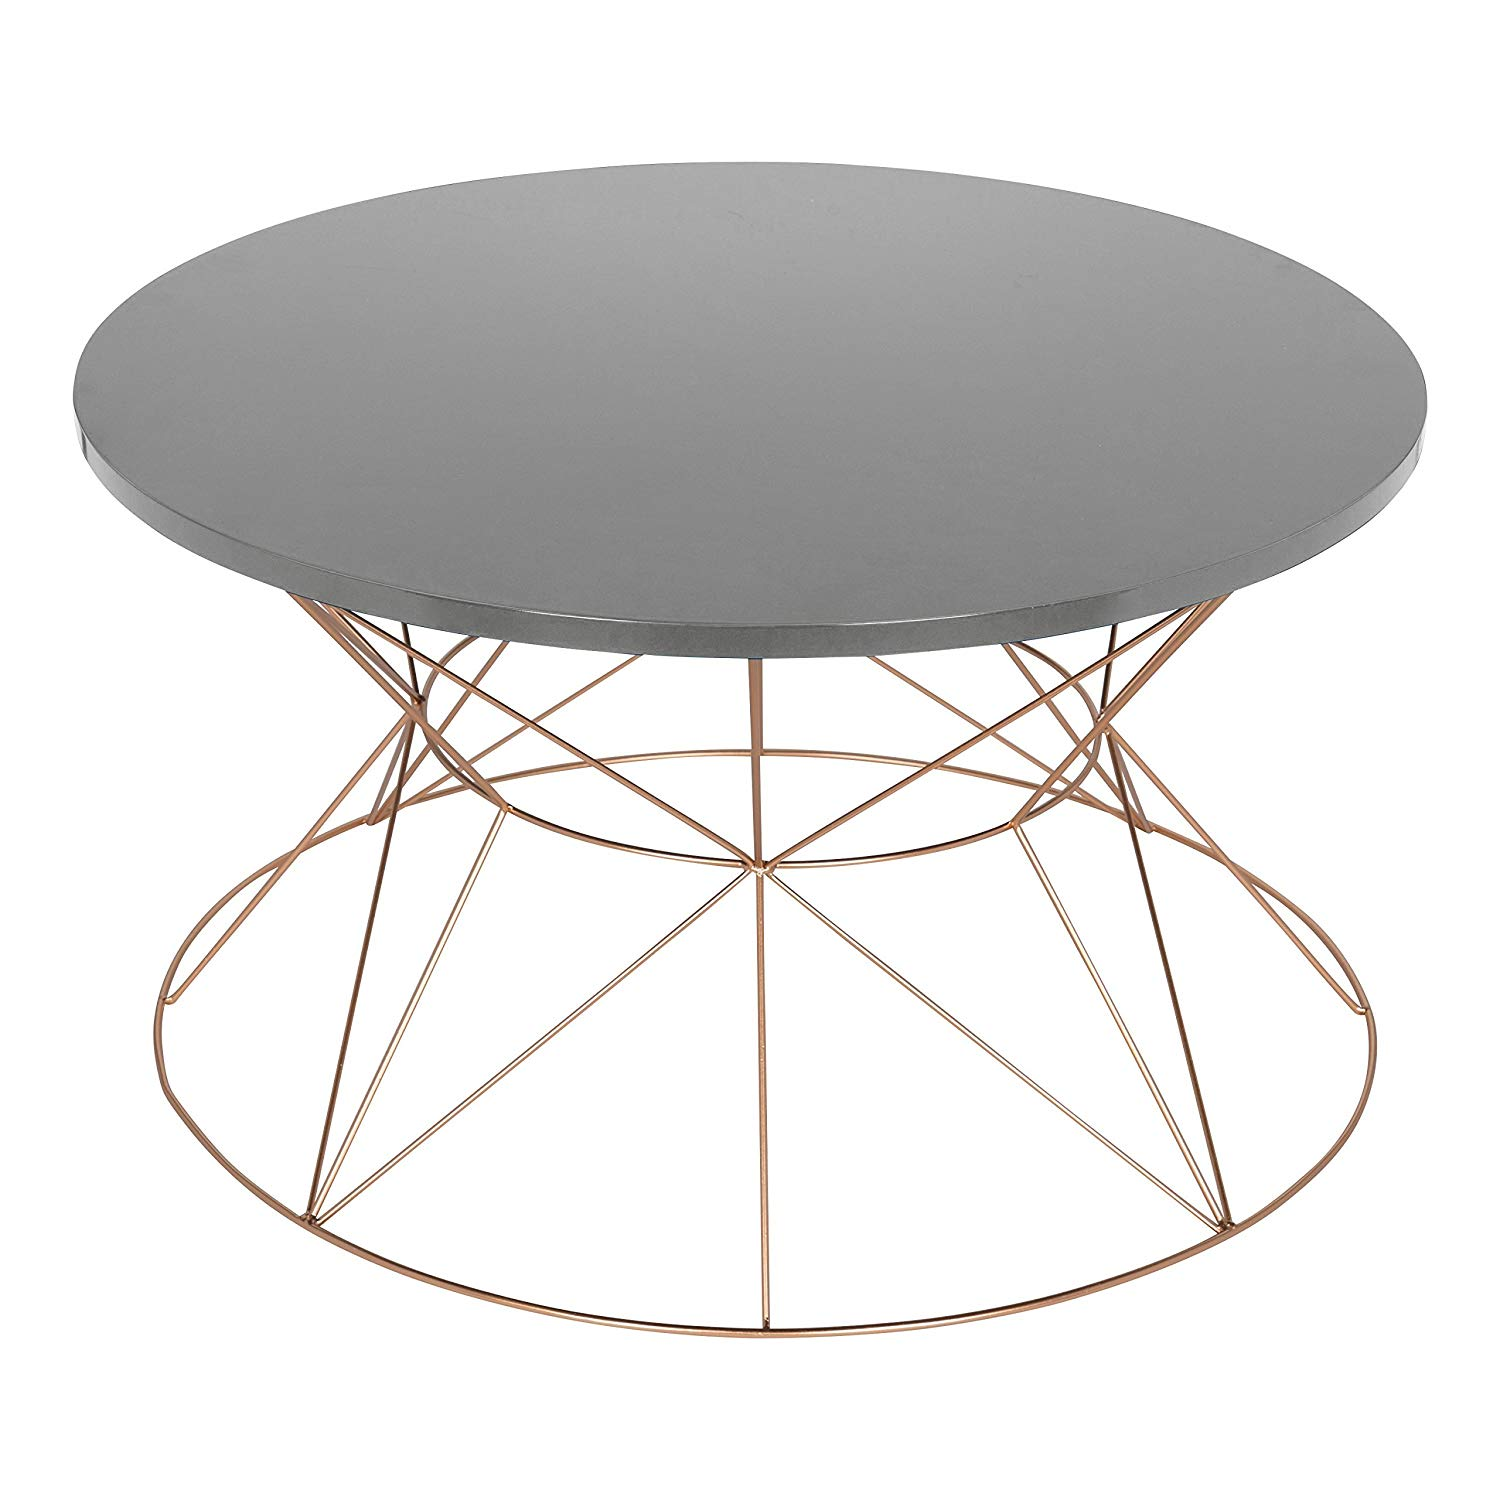 kate and laurel mendel round metal coffee table gray rose gold accent top with base kitchen dining brass nest tables wire side target chairs marble pool bench teal ikea pedestal